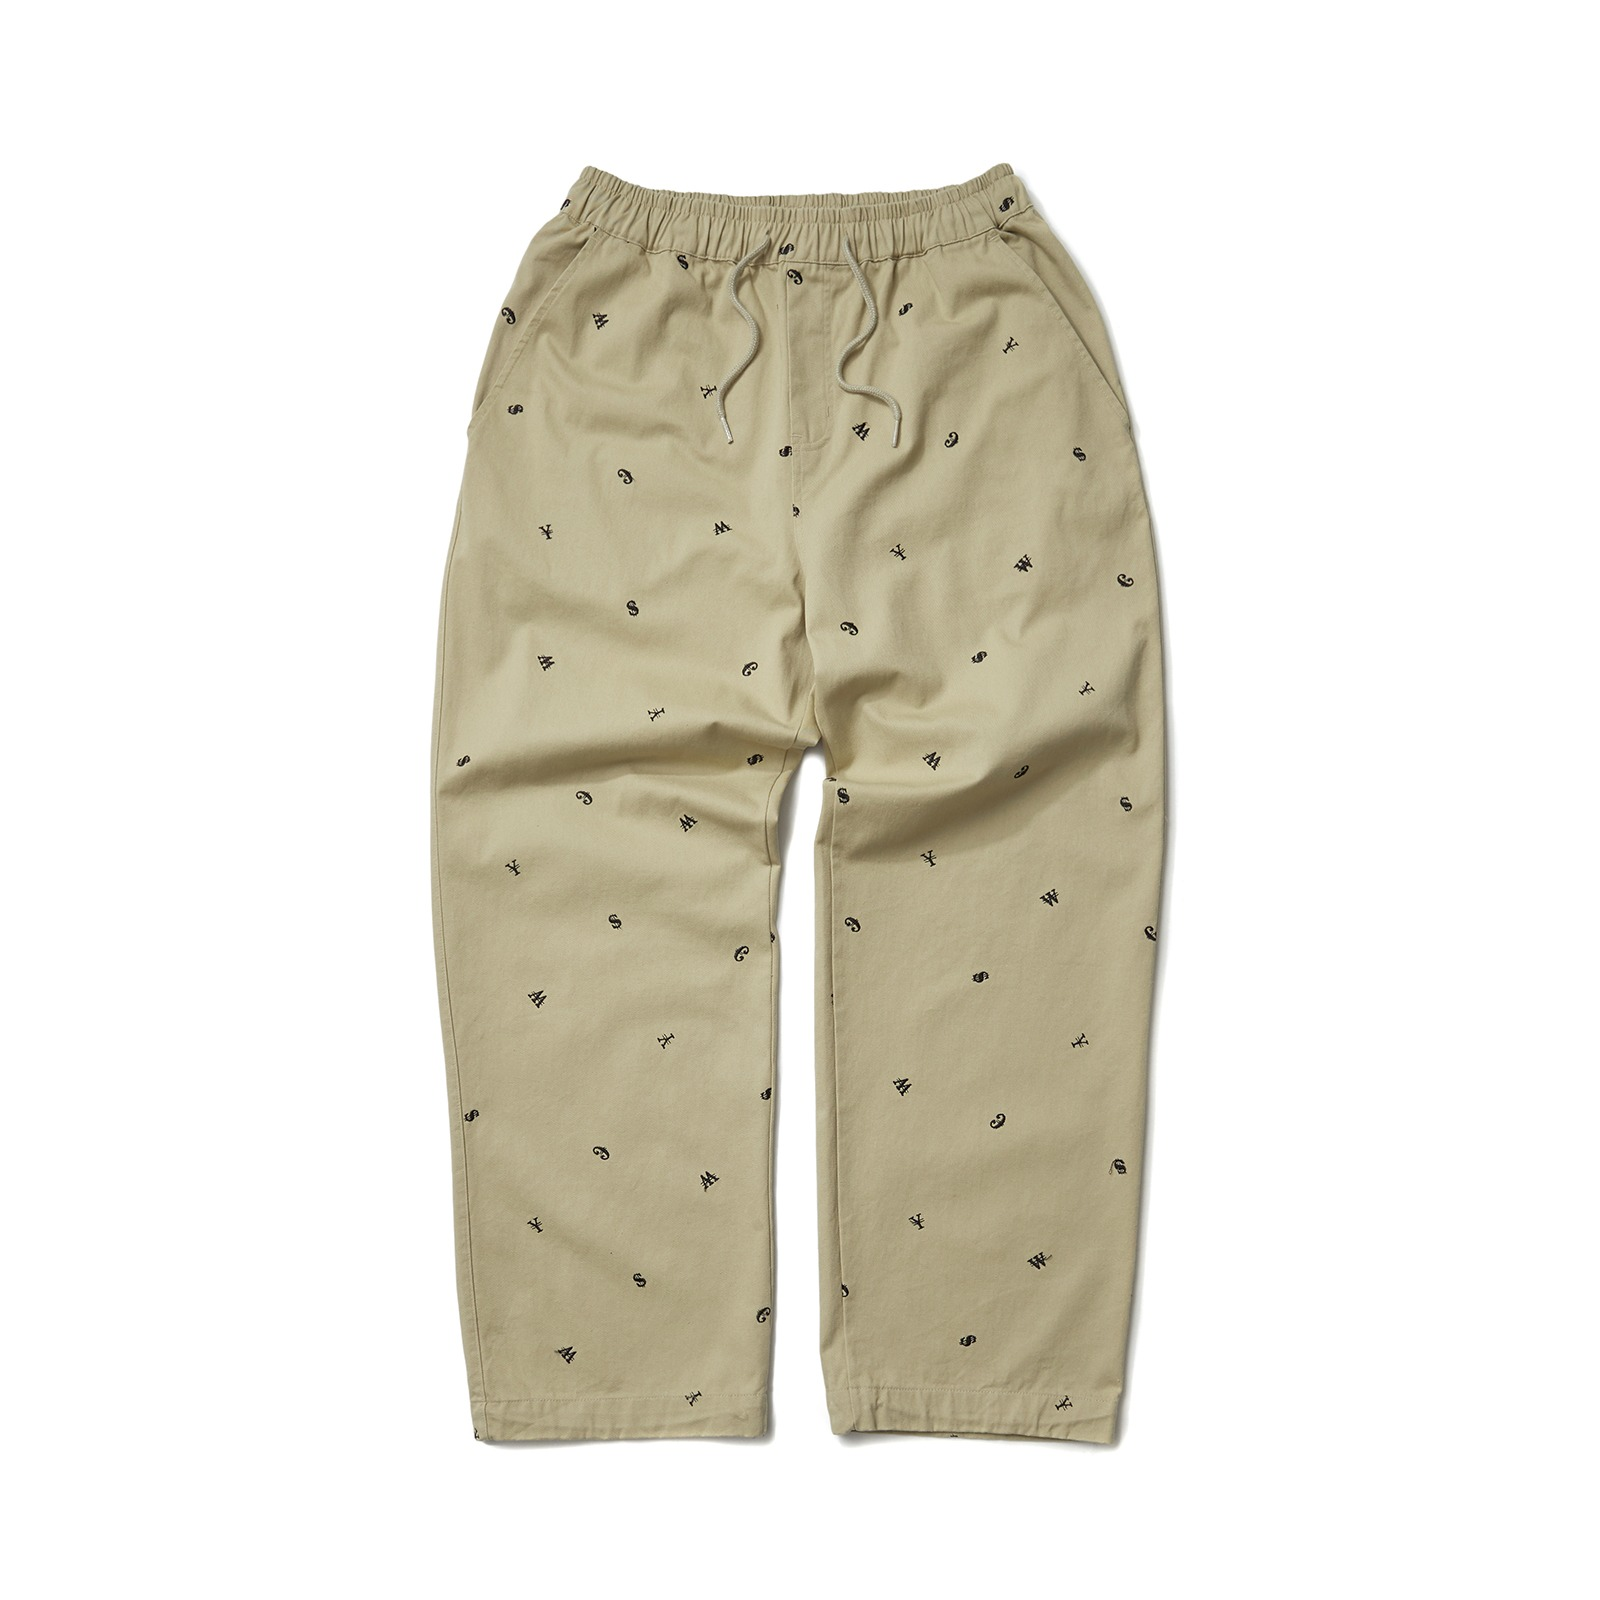 CURRENCY PANTS (BEIGE)